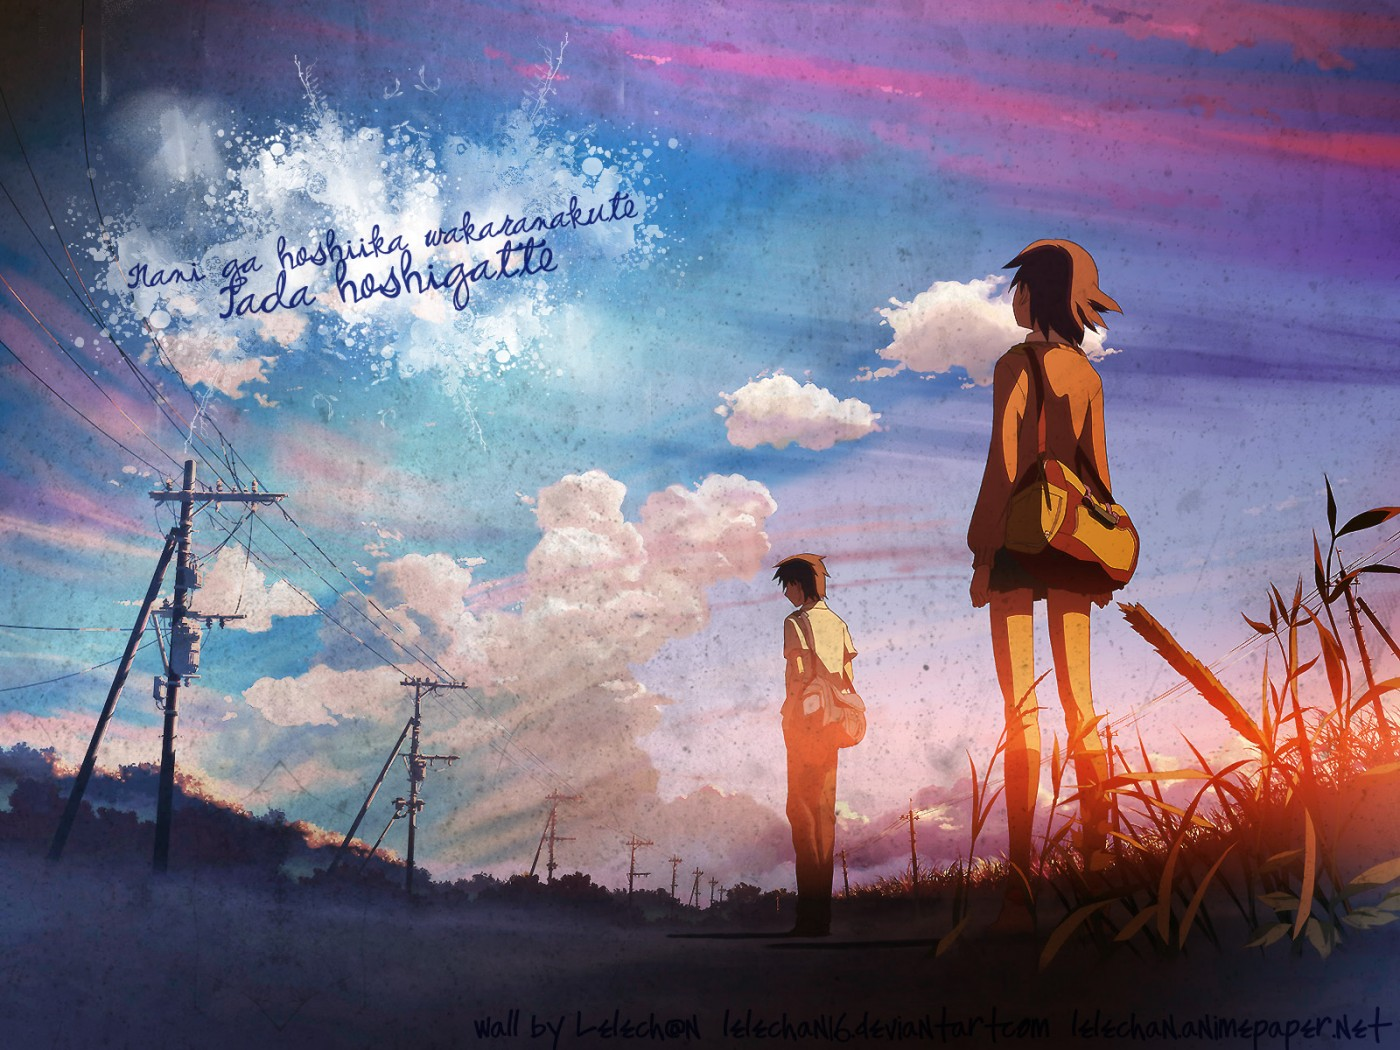 5 centimeters per second wallpaper and background image 1400x1050 id331265 wallpaper abyss